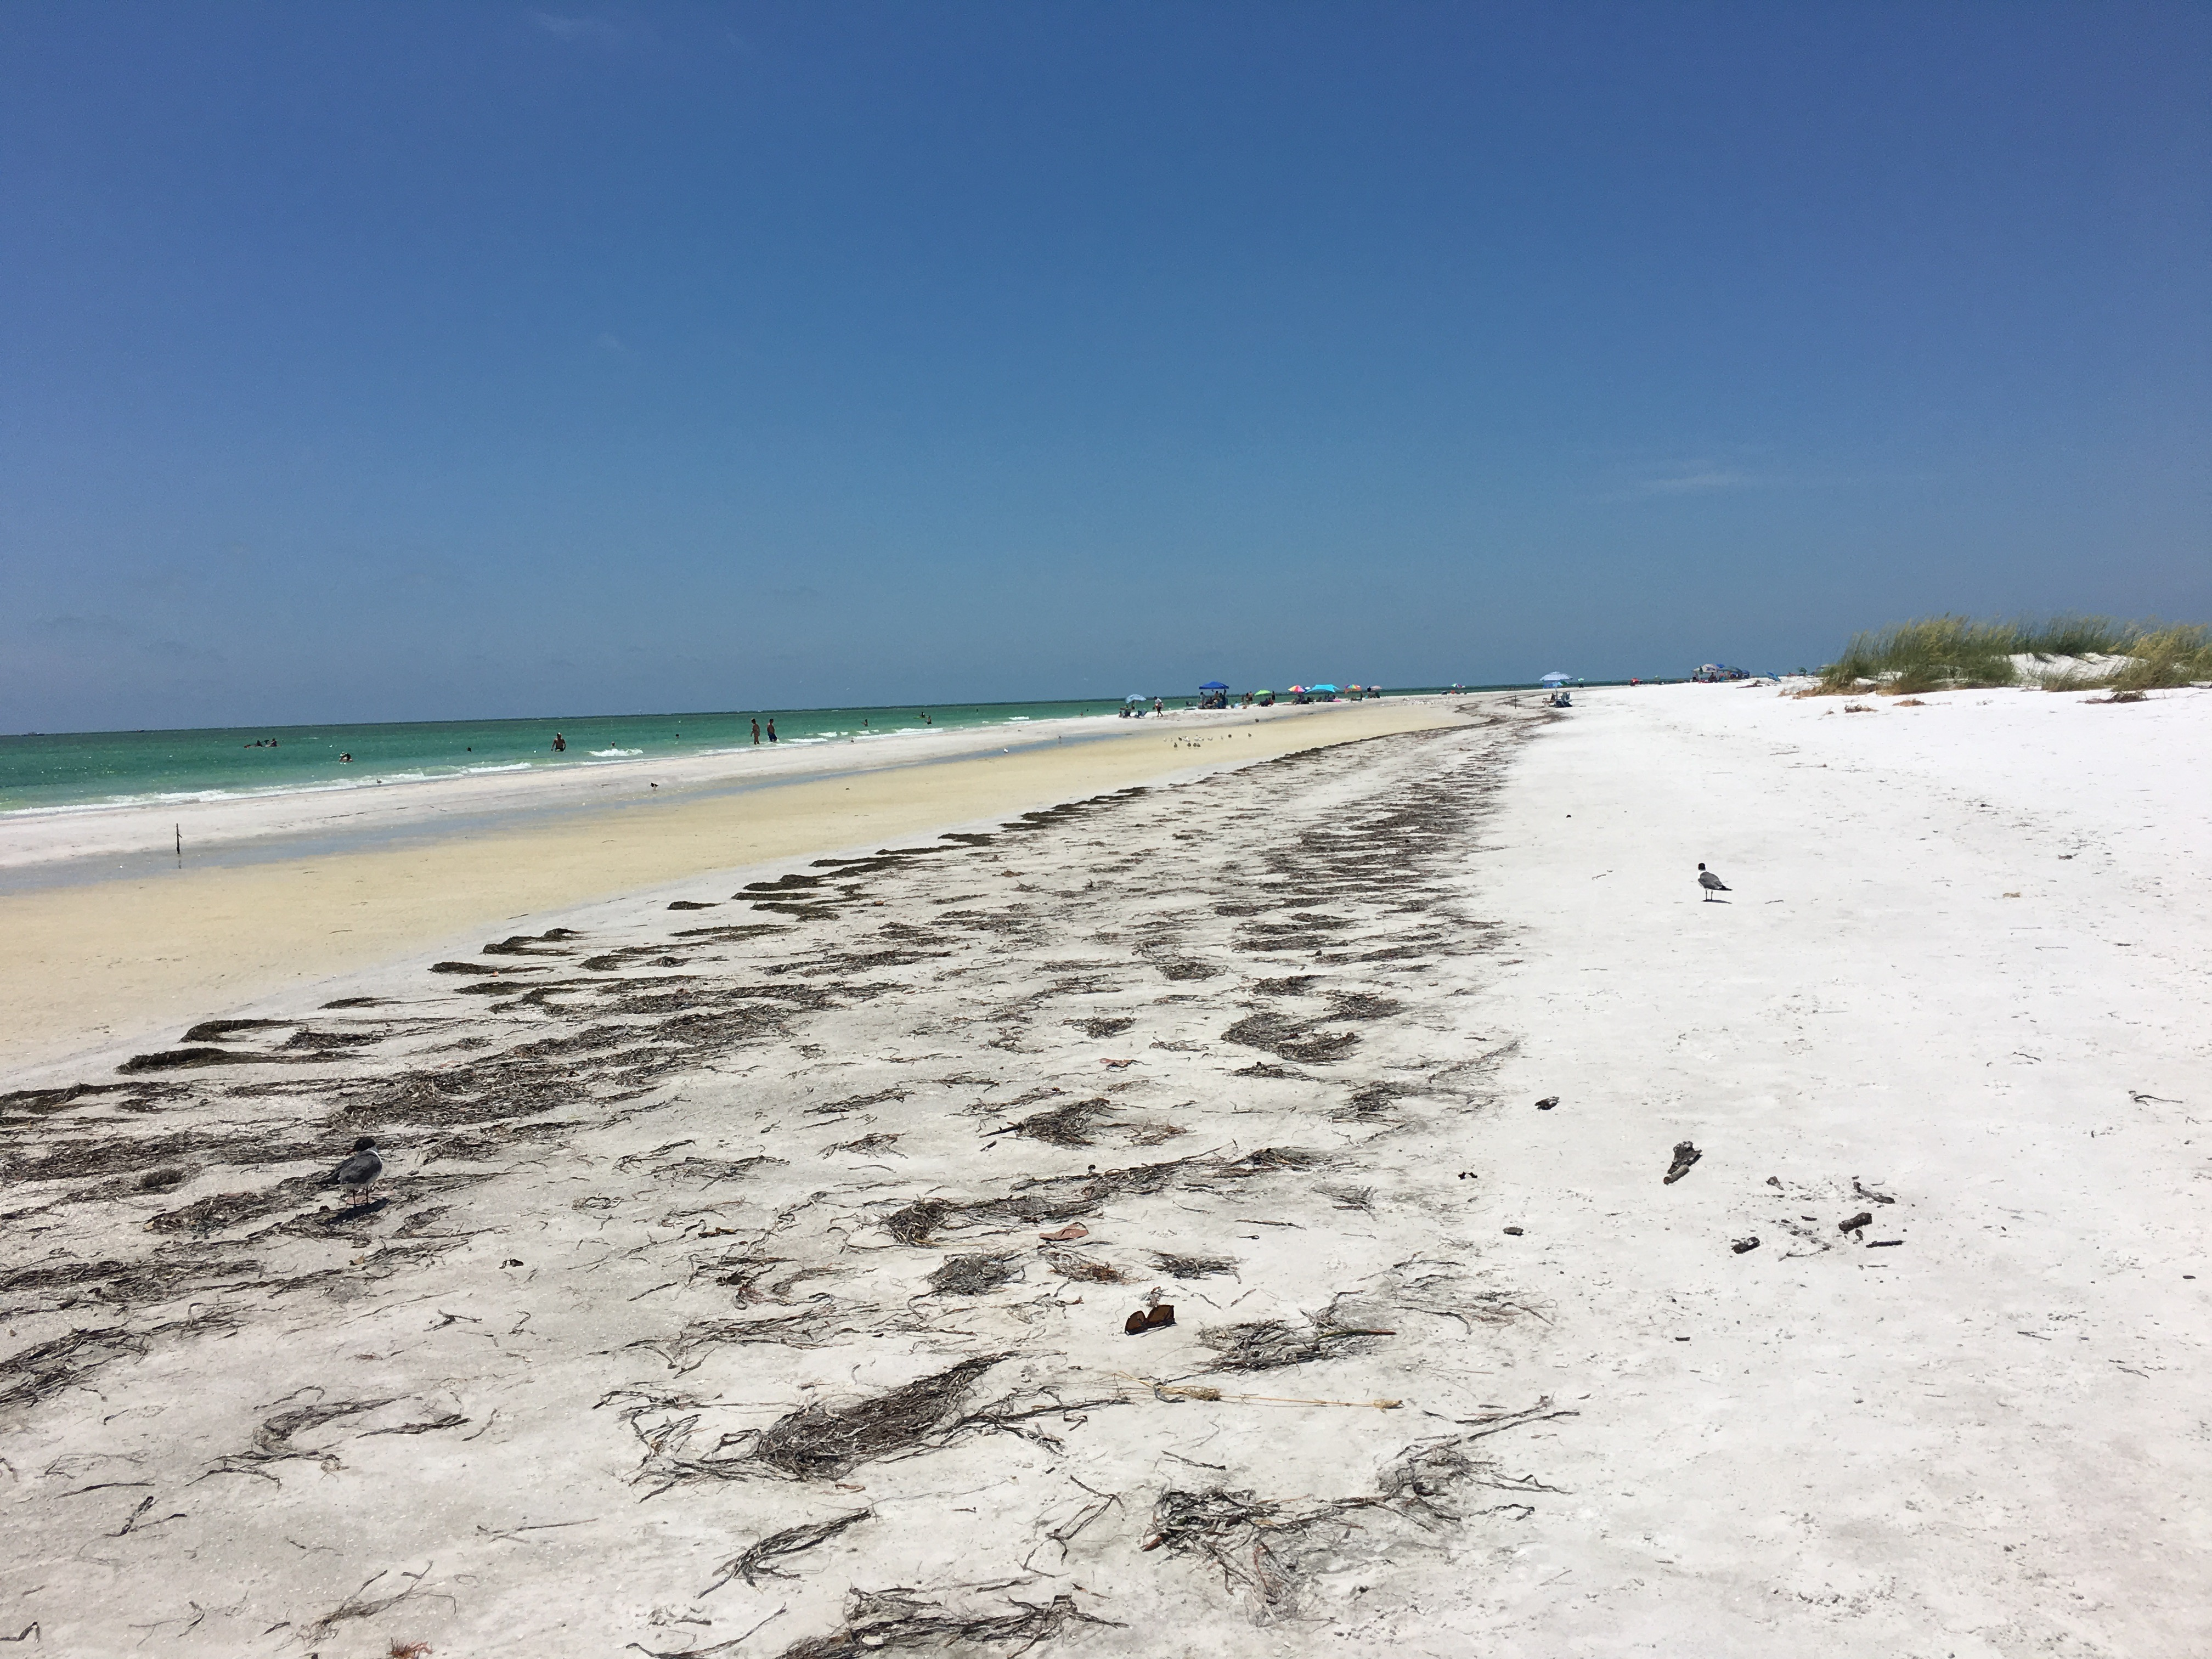 5 Resons to Visit Anna Maria Island, Florida. Where to eat, where to stay and which beaches to visit. #florida #beaches #annamariaisland